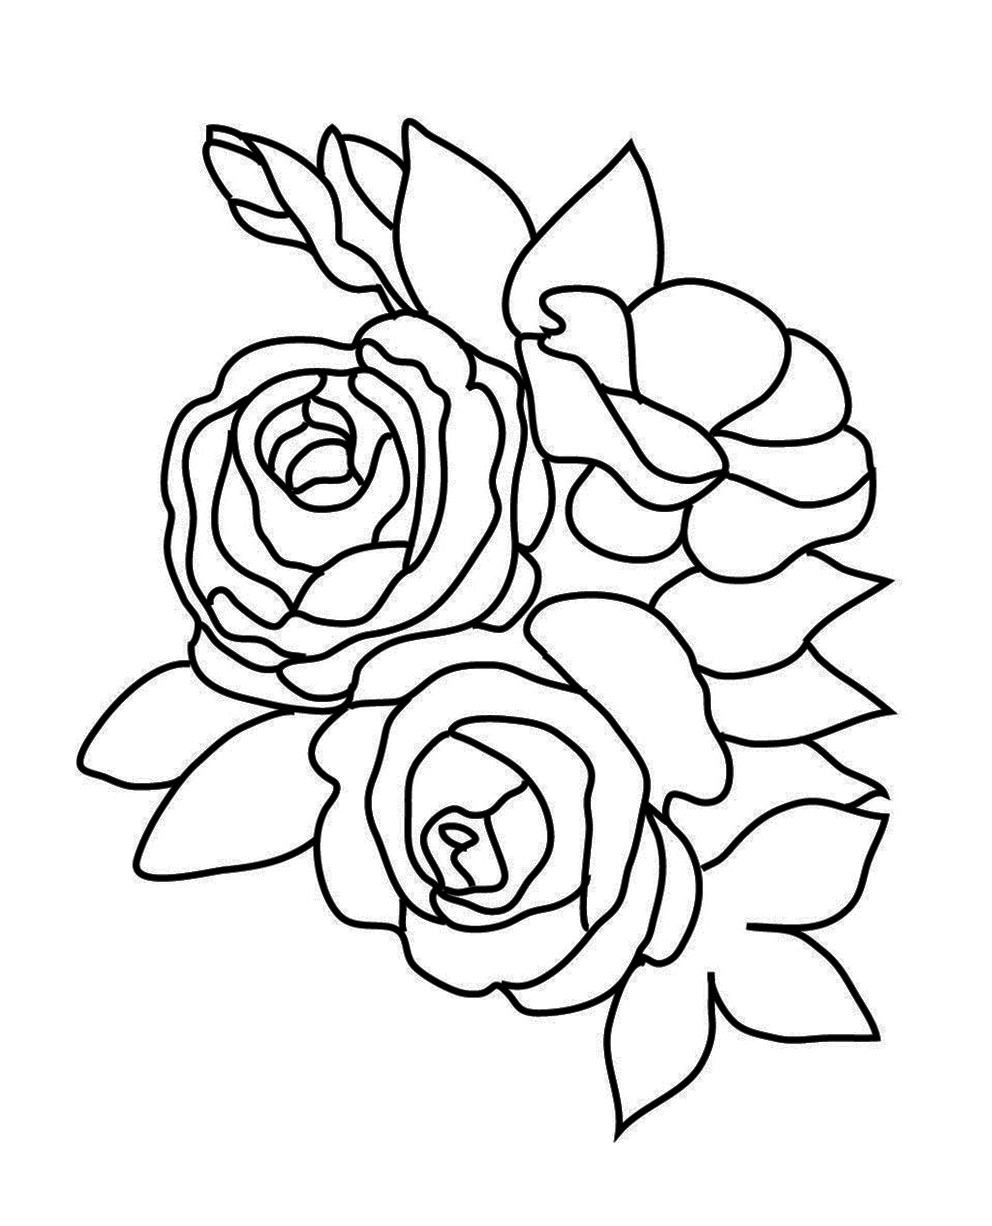 realistic rose flower coloring pages rose color pencil drawing at getdrawings free download realistic rose pages flower coloring